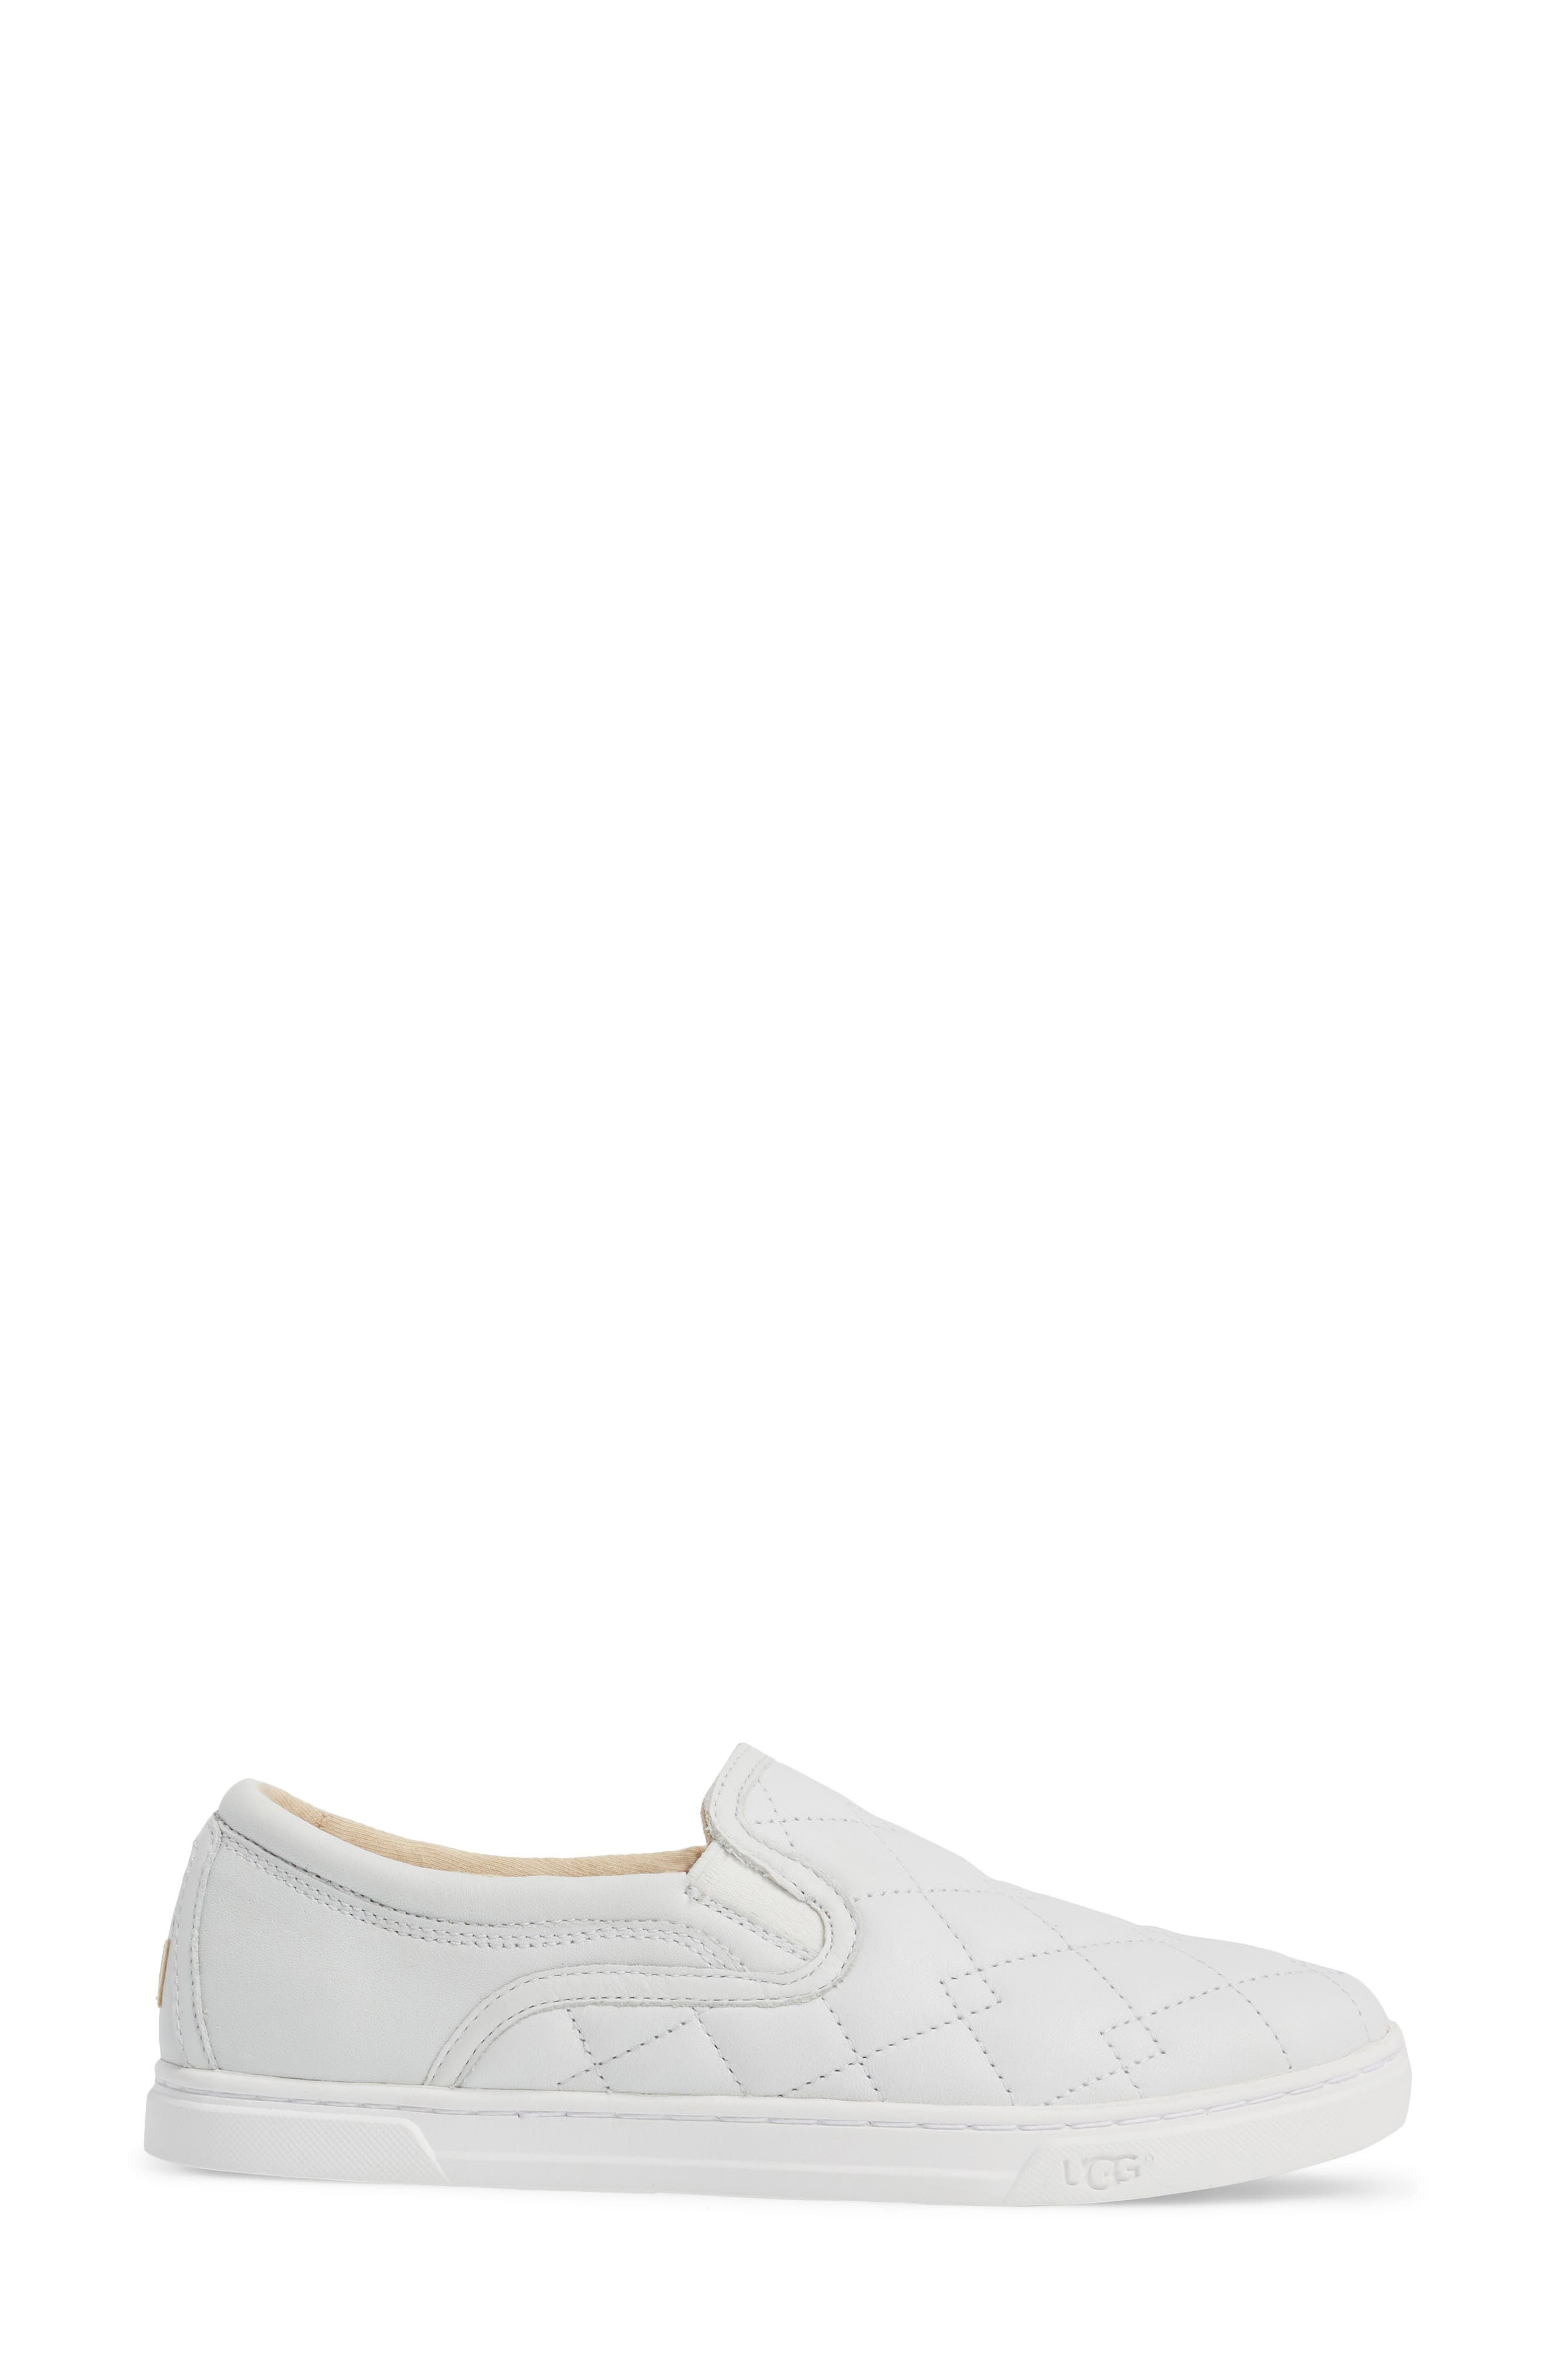 Fierce Deco Quilted Slip-On Sneaker,                             Alternate thumbnail 3, color,                             100